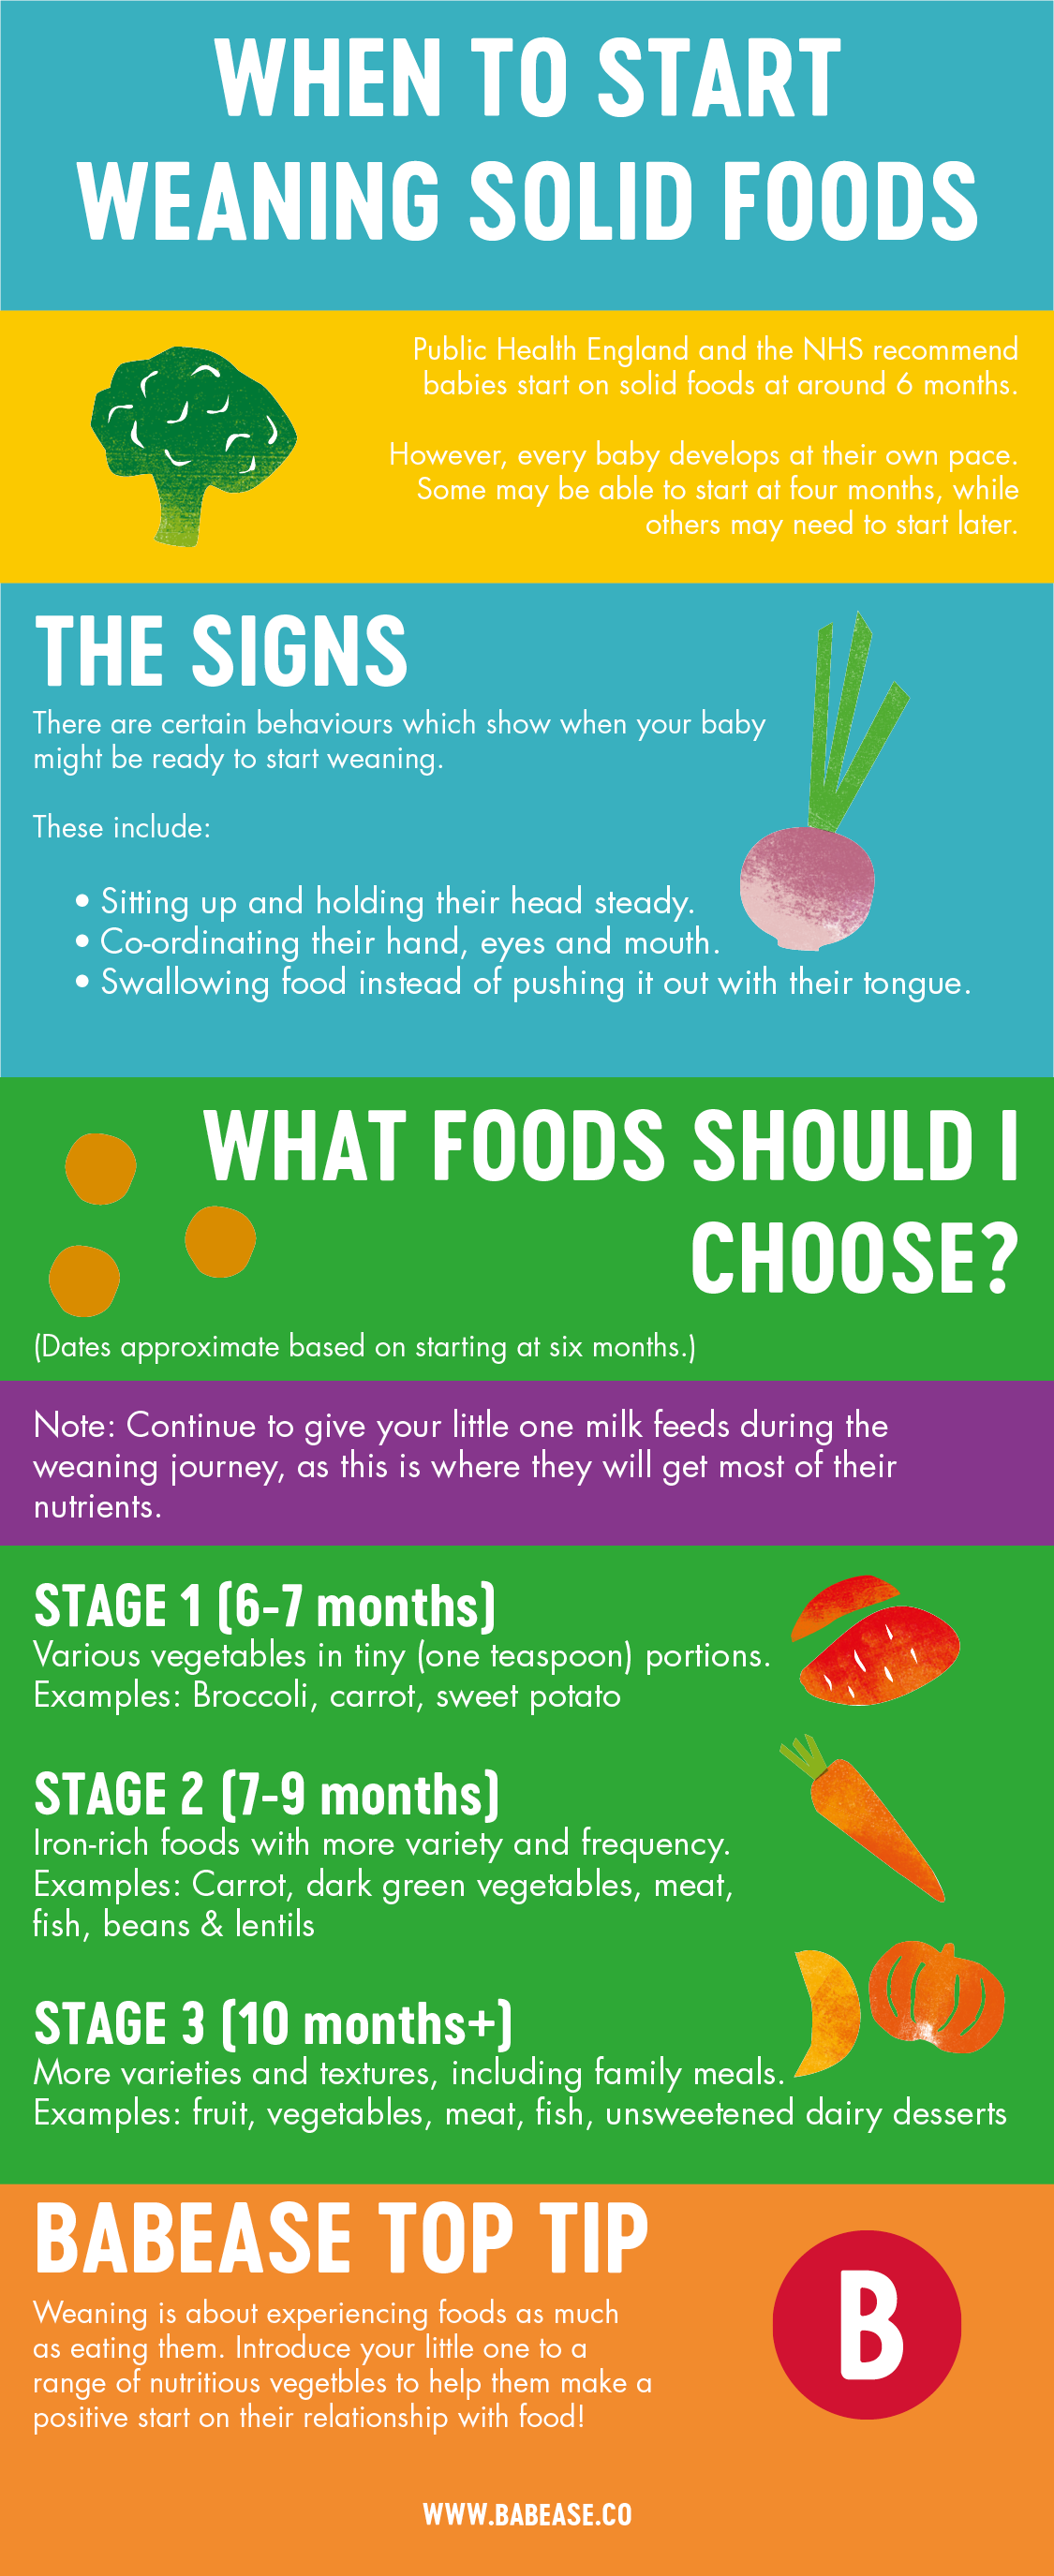 When to start weaning solid foods Babease infographic